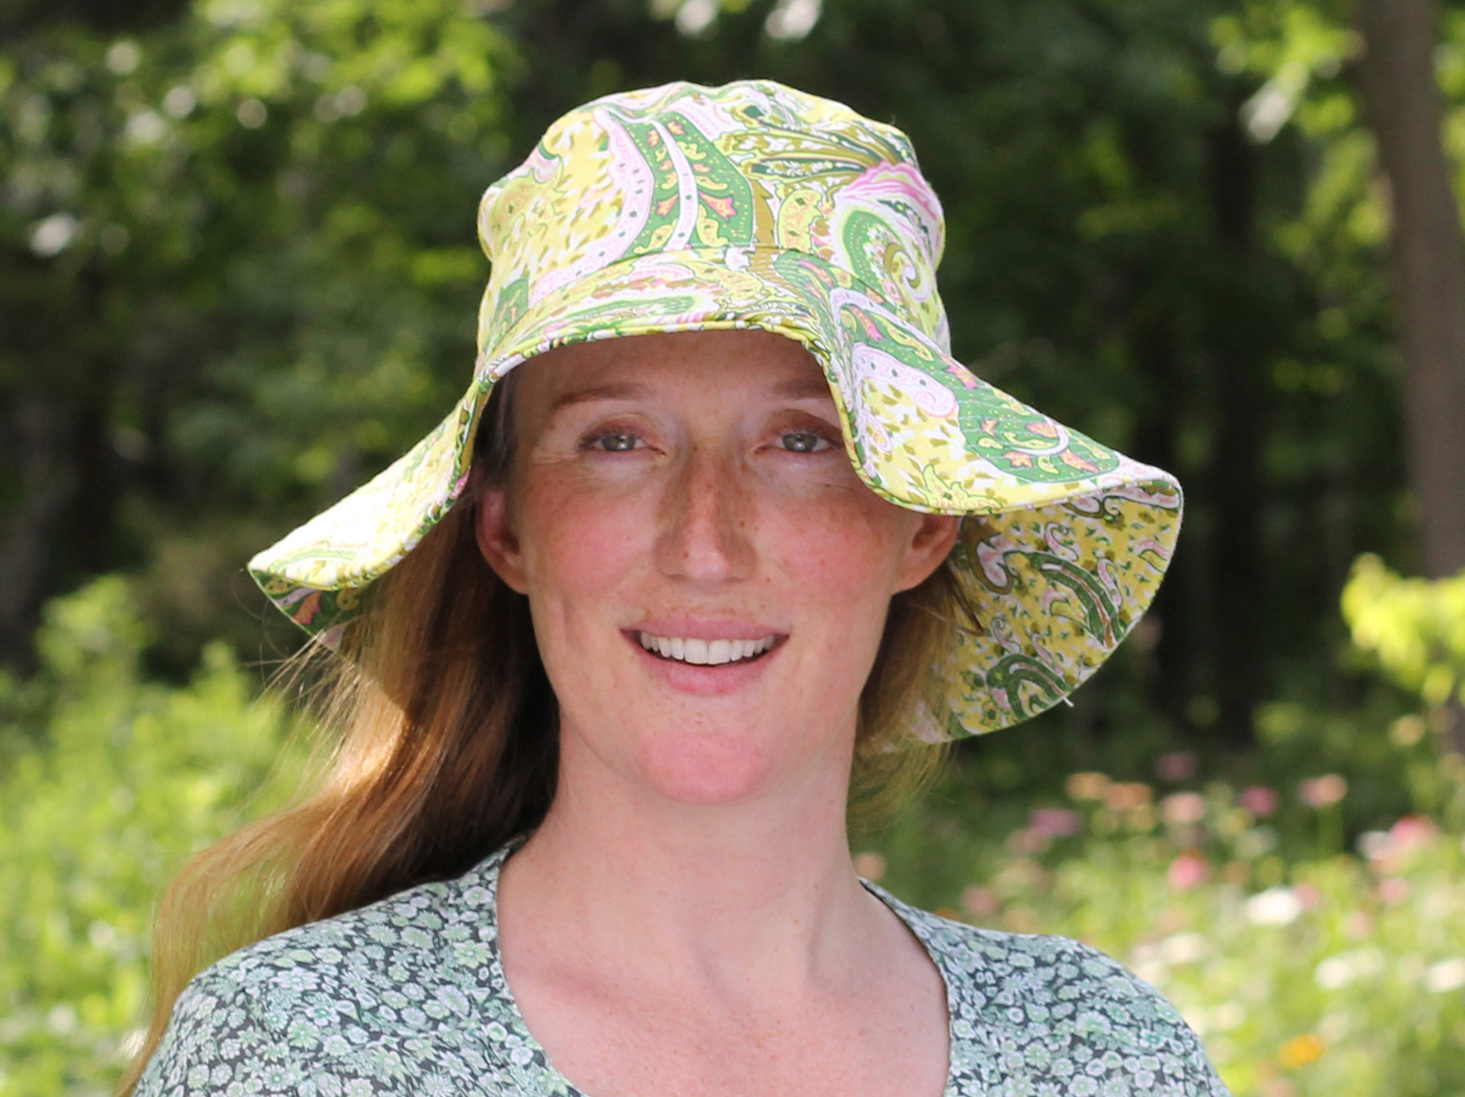 Women s Sun Protection Hats Wide-Brimmed for Gardening  f3bca1ab51e